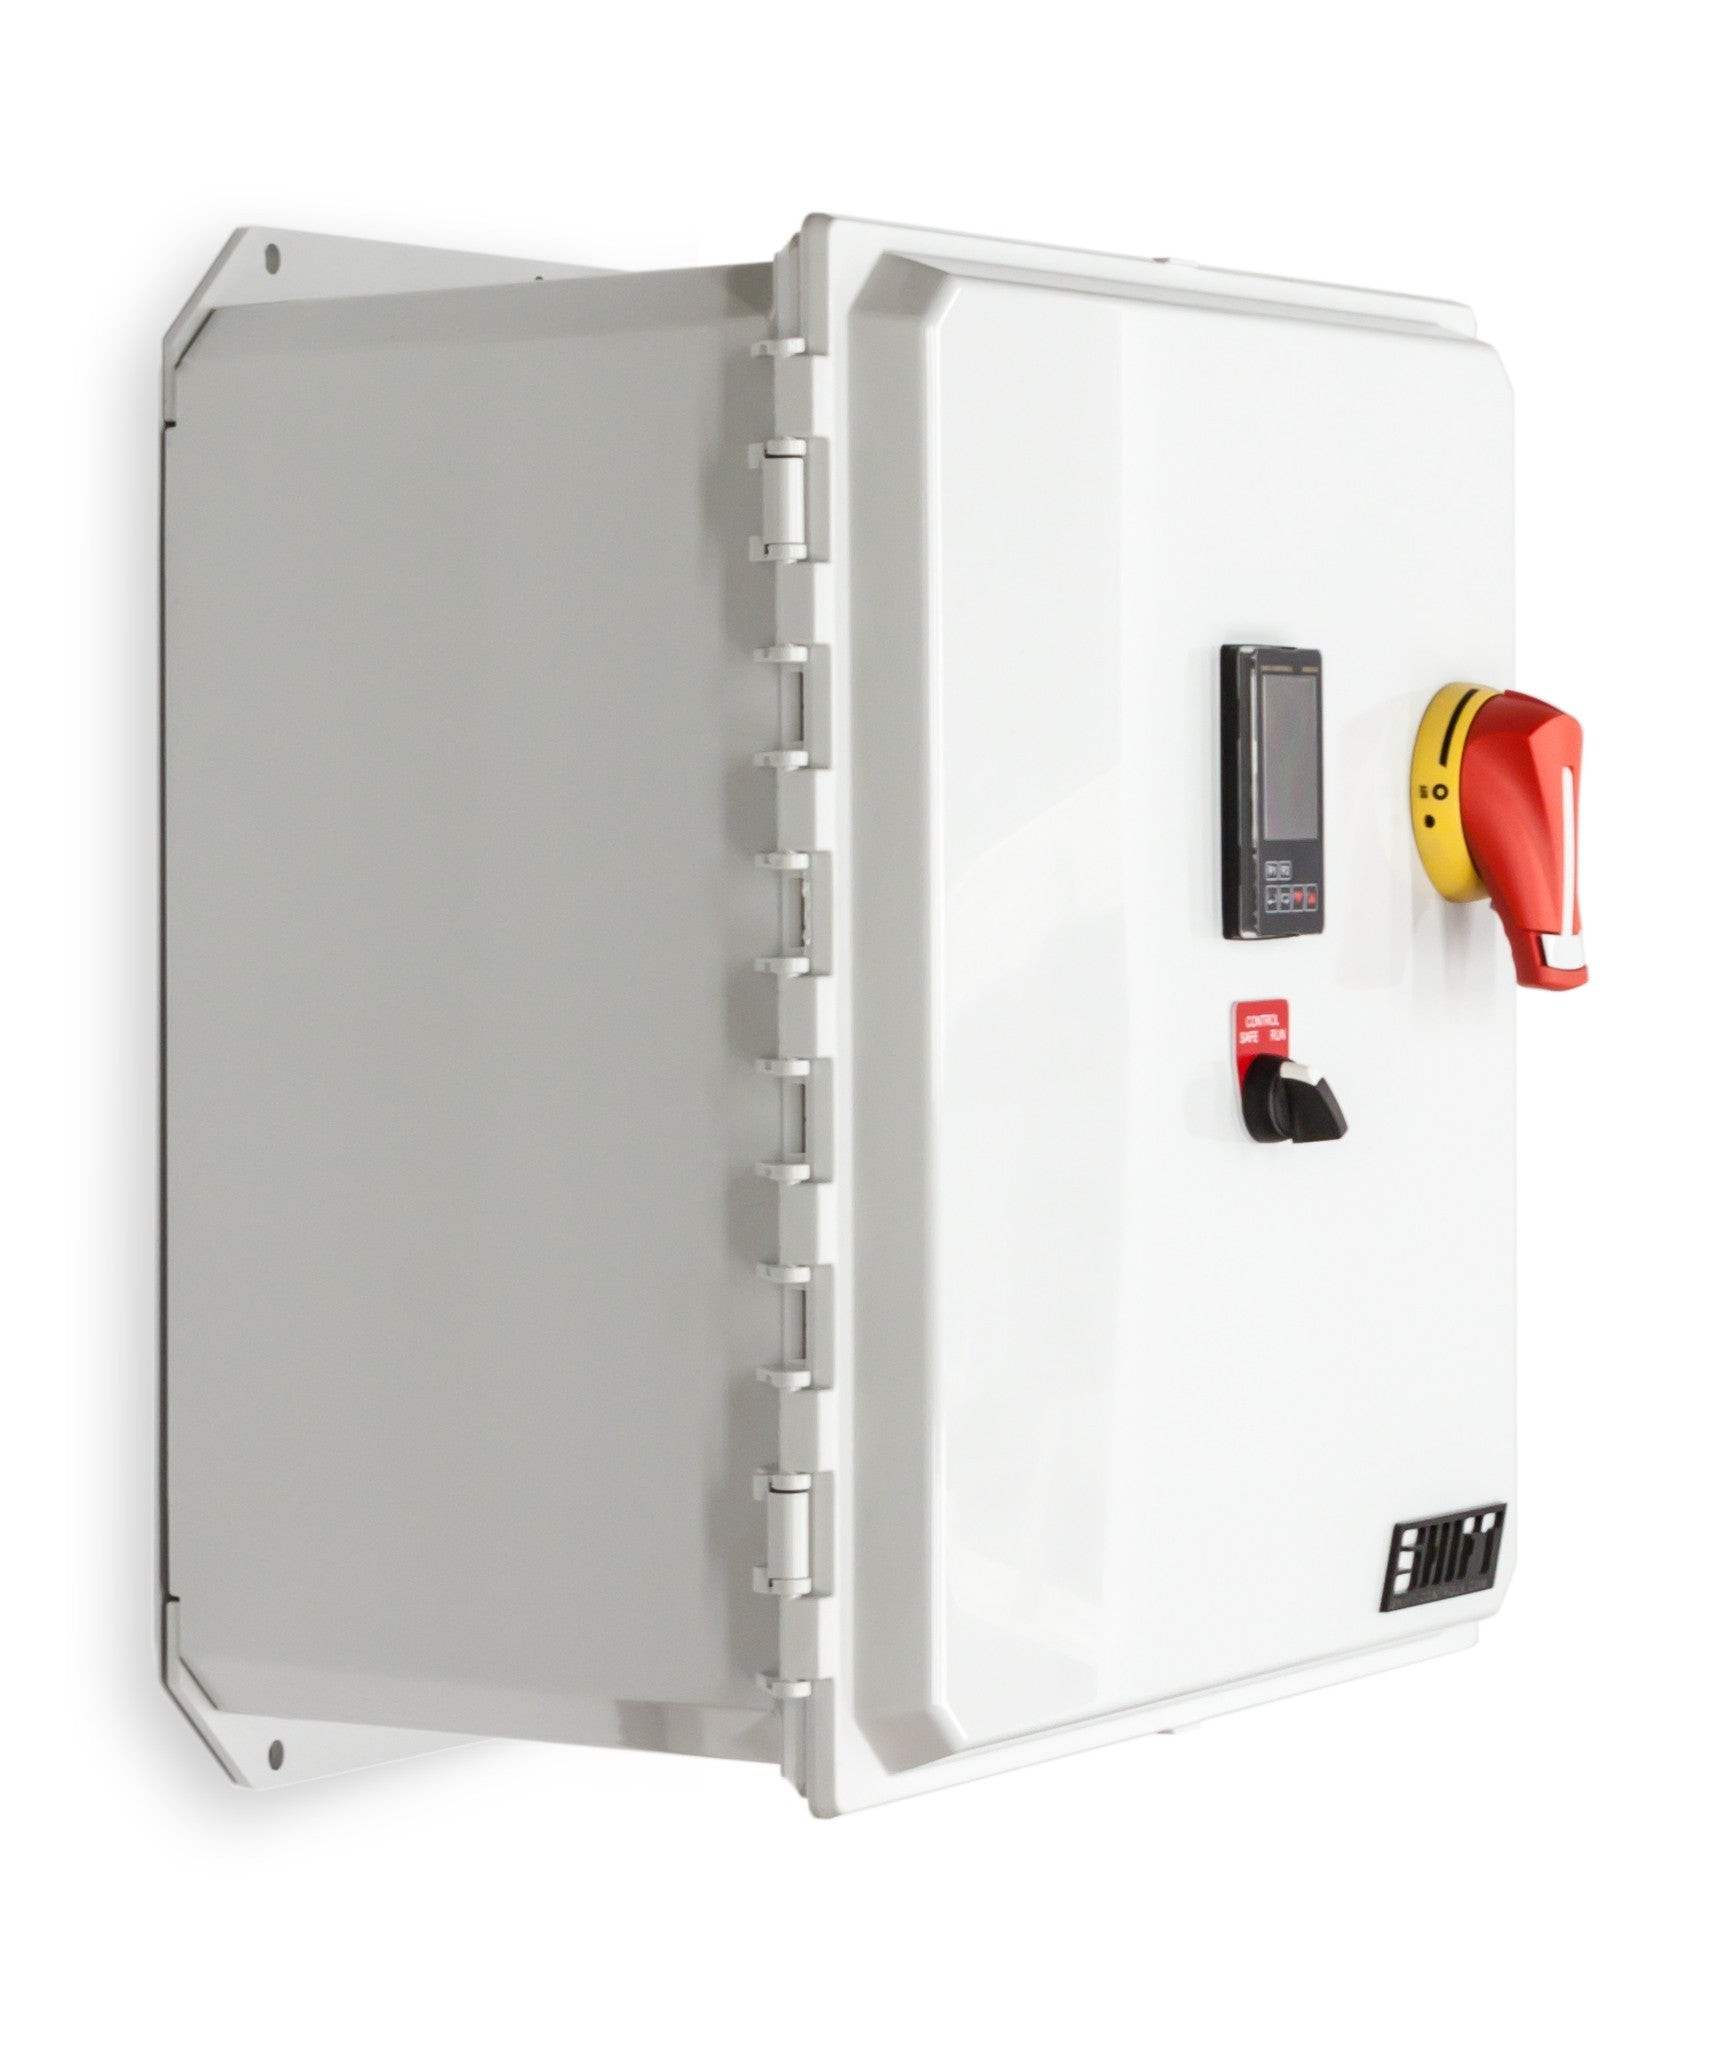 Temperature Control Panel Three Phase 480 Vac 24 Amp 200 Kw 30 Volt Fuse Box 480v 24a Shift Controls Hinge Iso